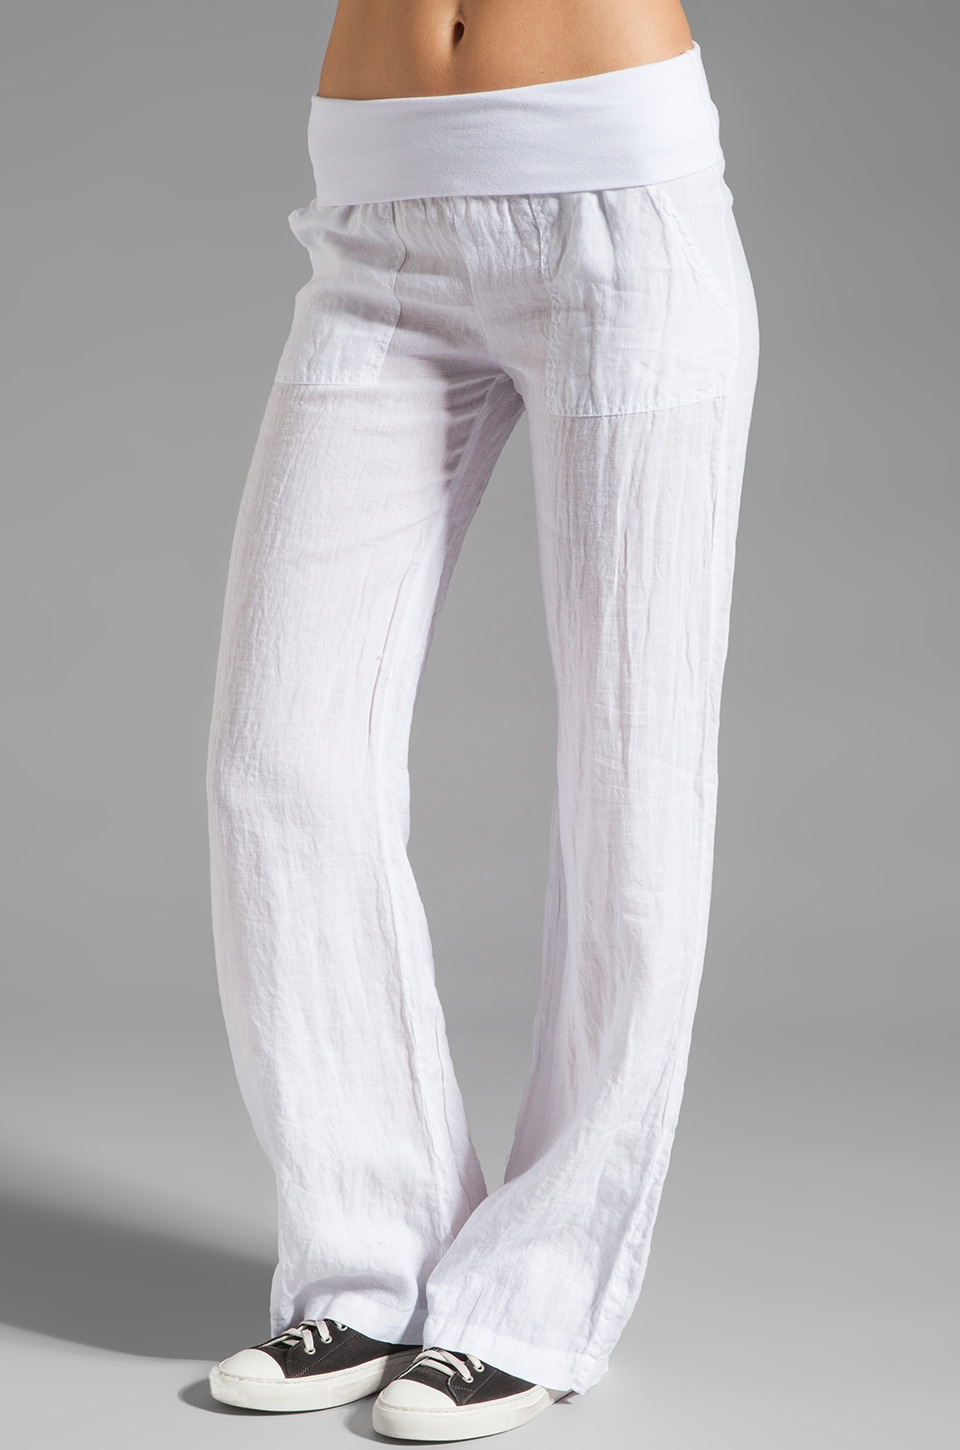 SOLOW Linen Pant in White